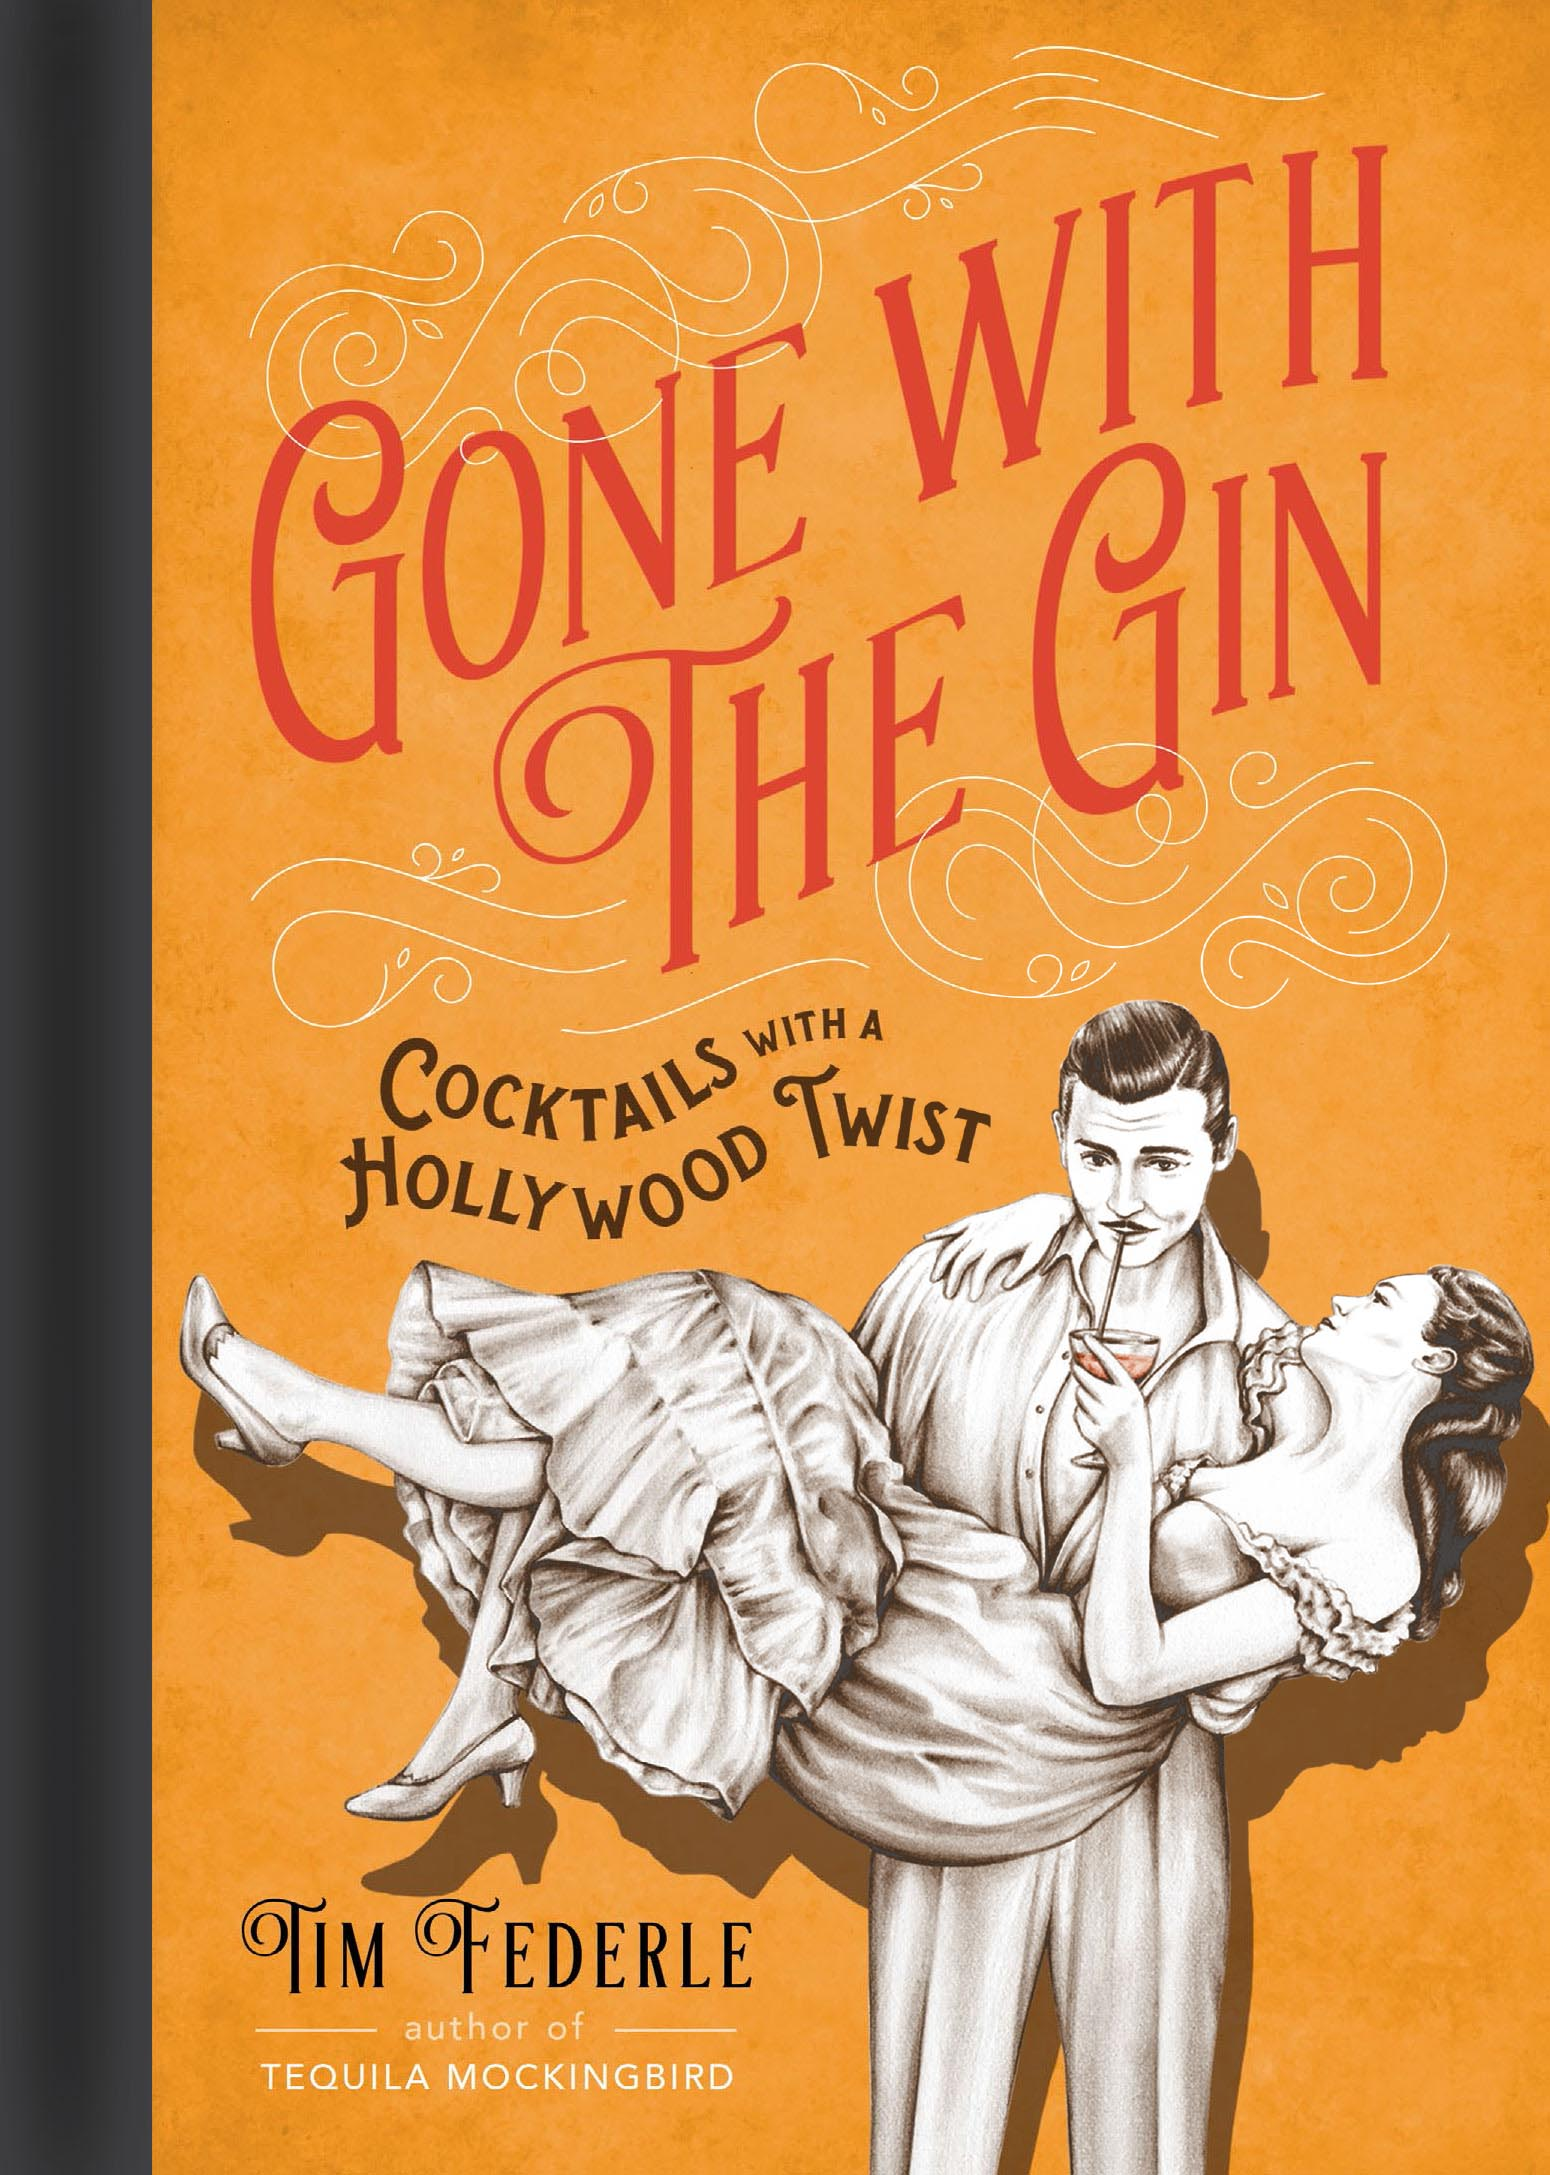 Book Review: Gone with the Gin – Cocktails with a Hollywood Twist